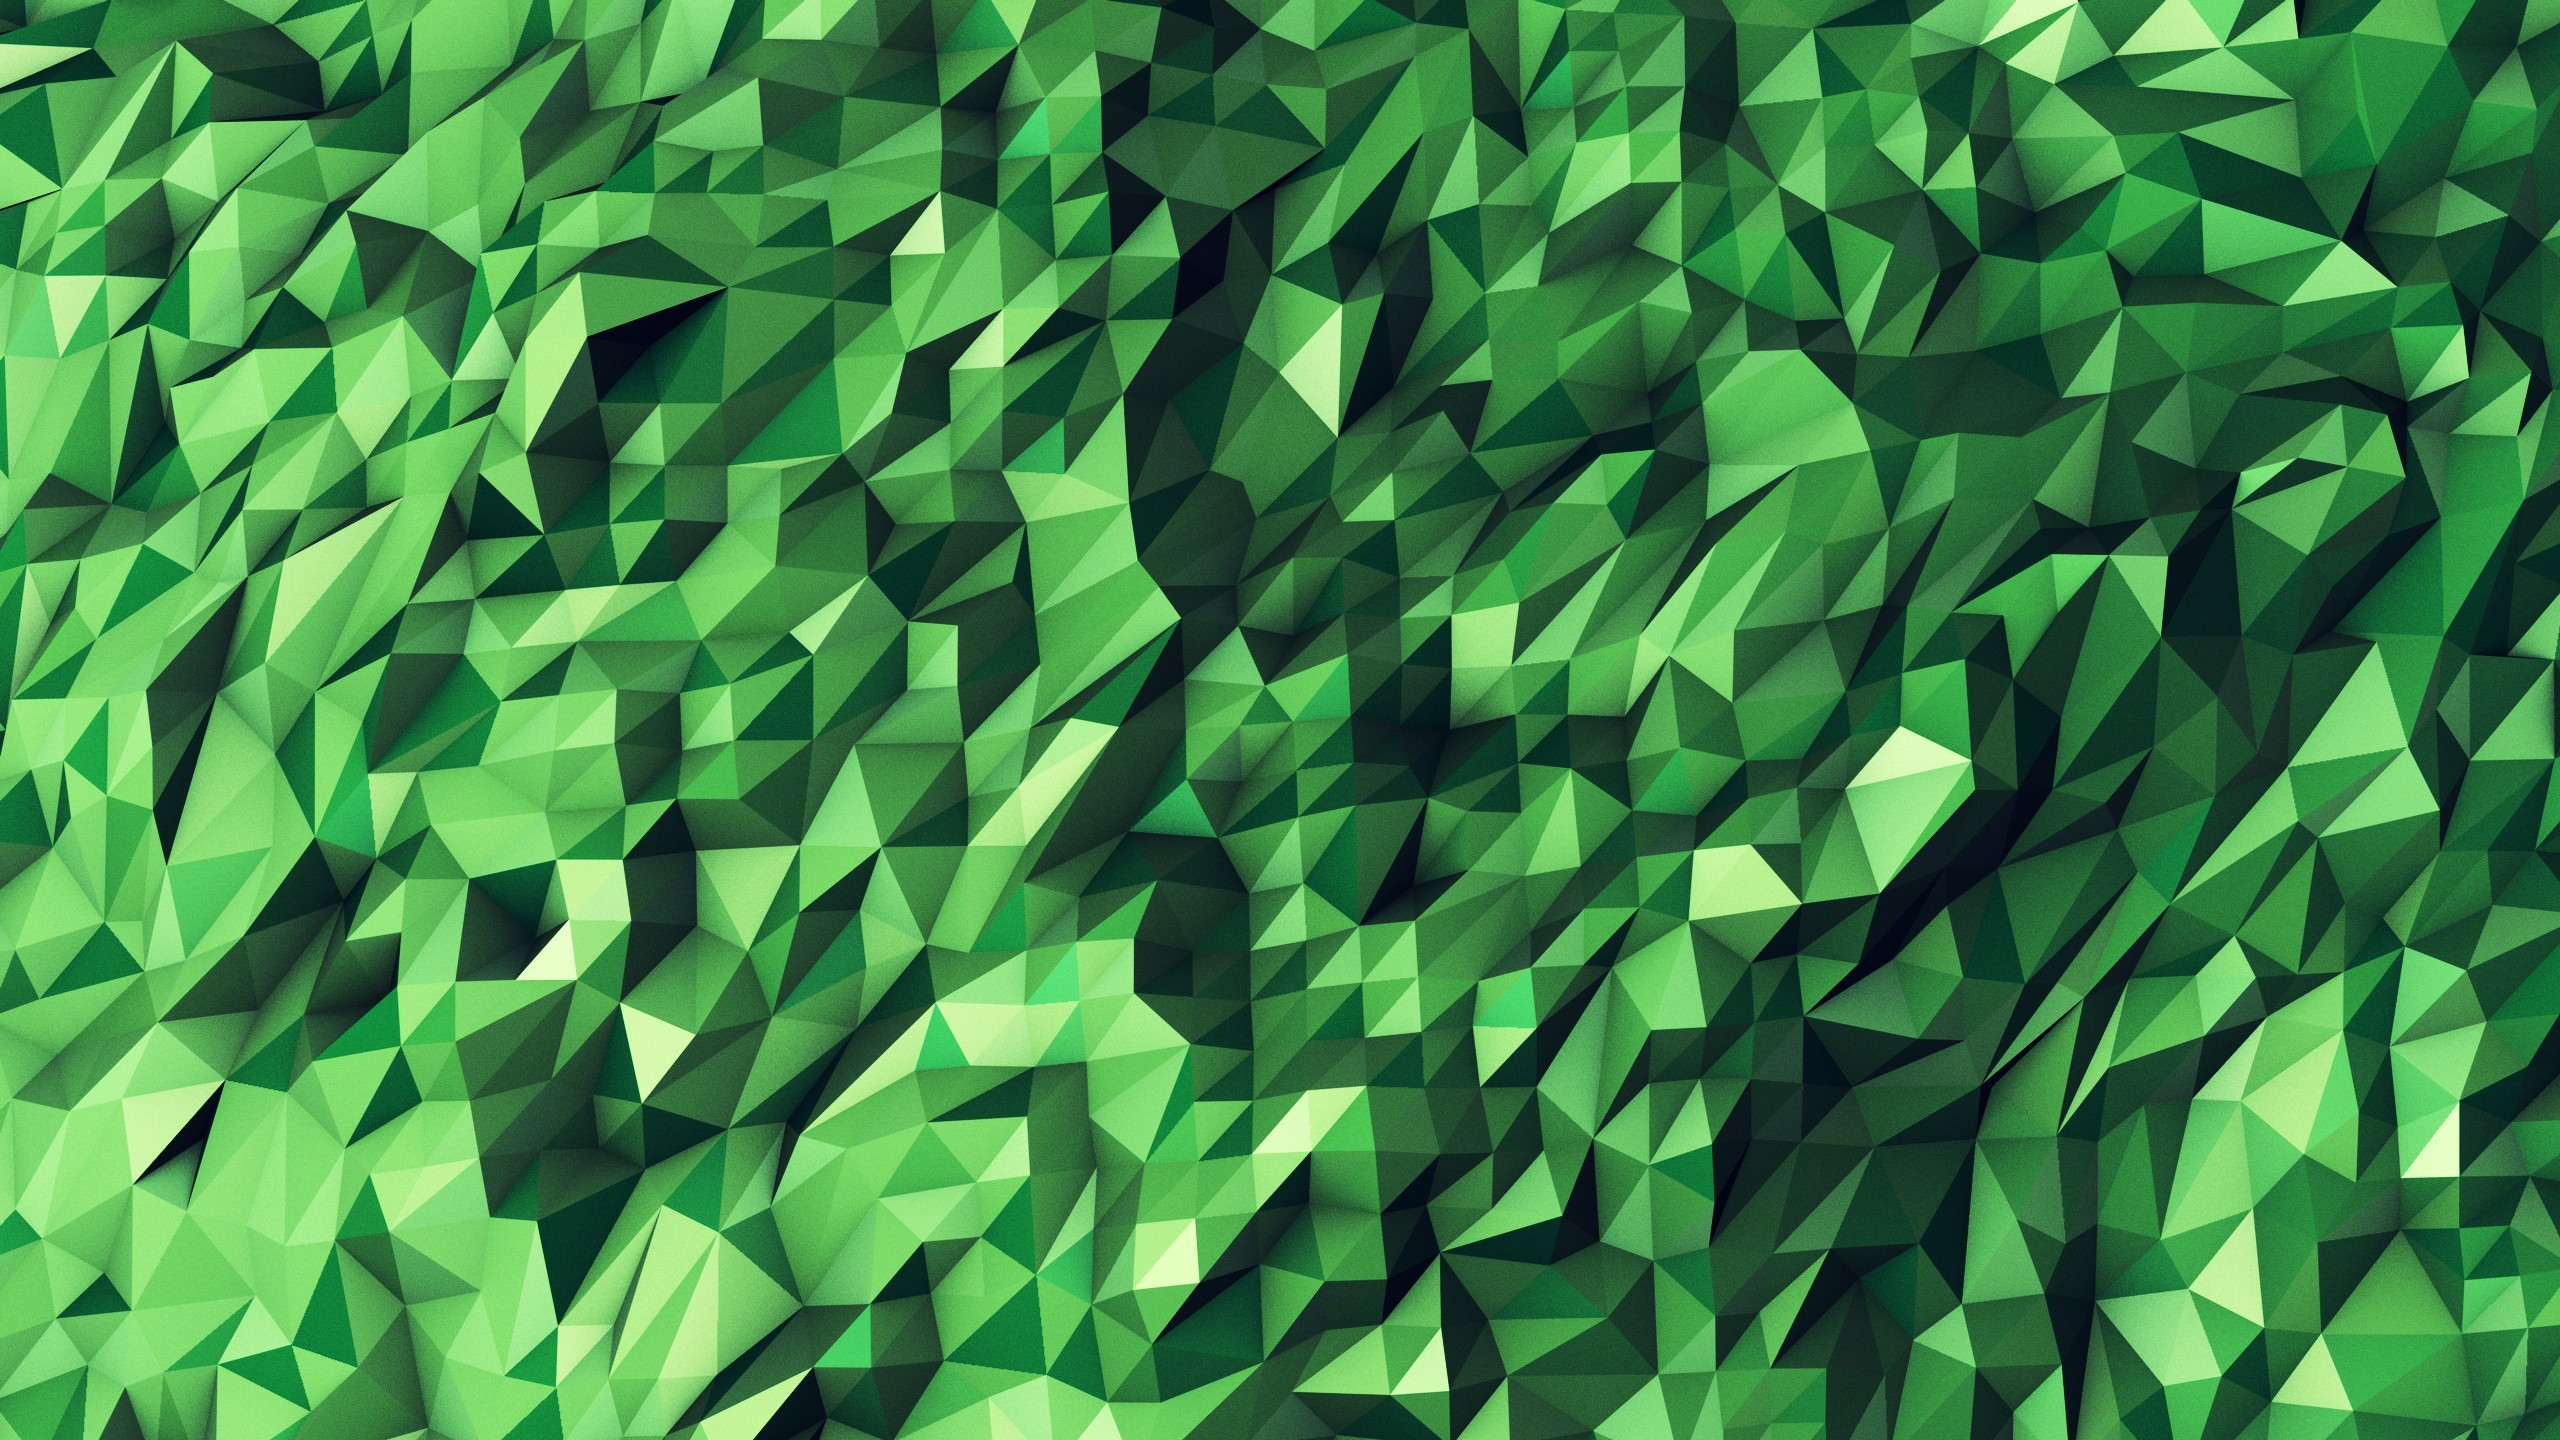 wallpaper.wiki-HQ-Abstract-Green-2560×1440-PIC-WPC002325